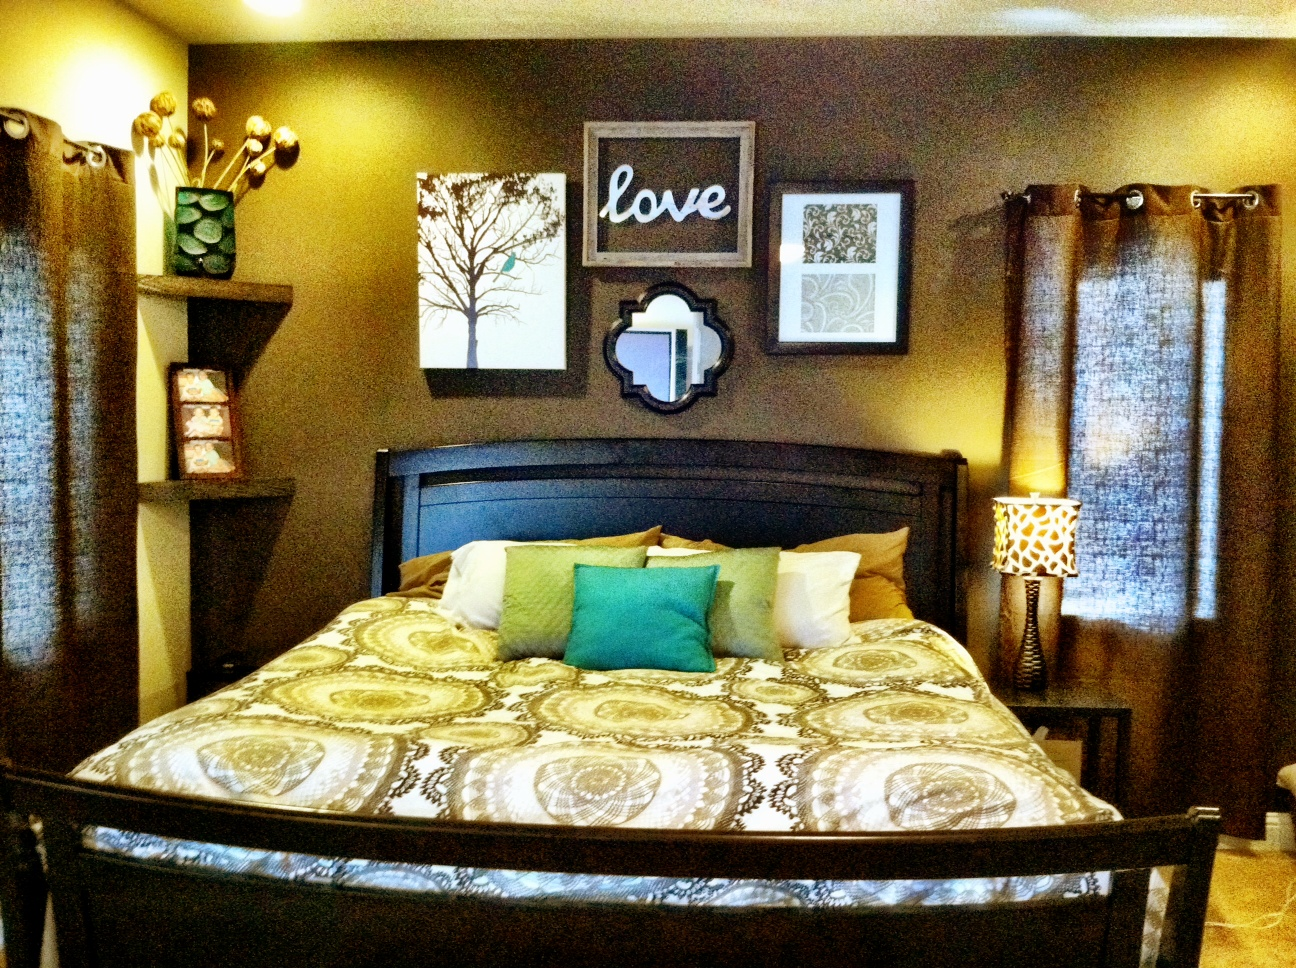 Romantic bedroom decorating ideas pinterest - Romantic Bedroom Decorating Ideas Pinterest 23